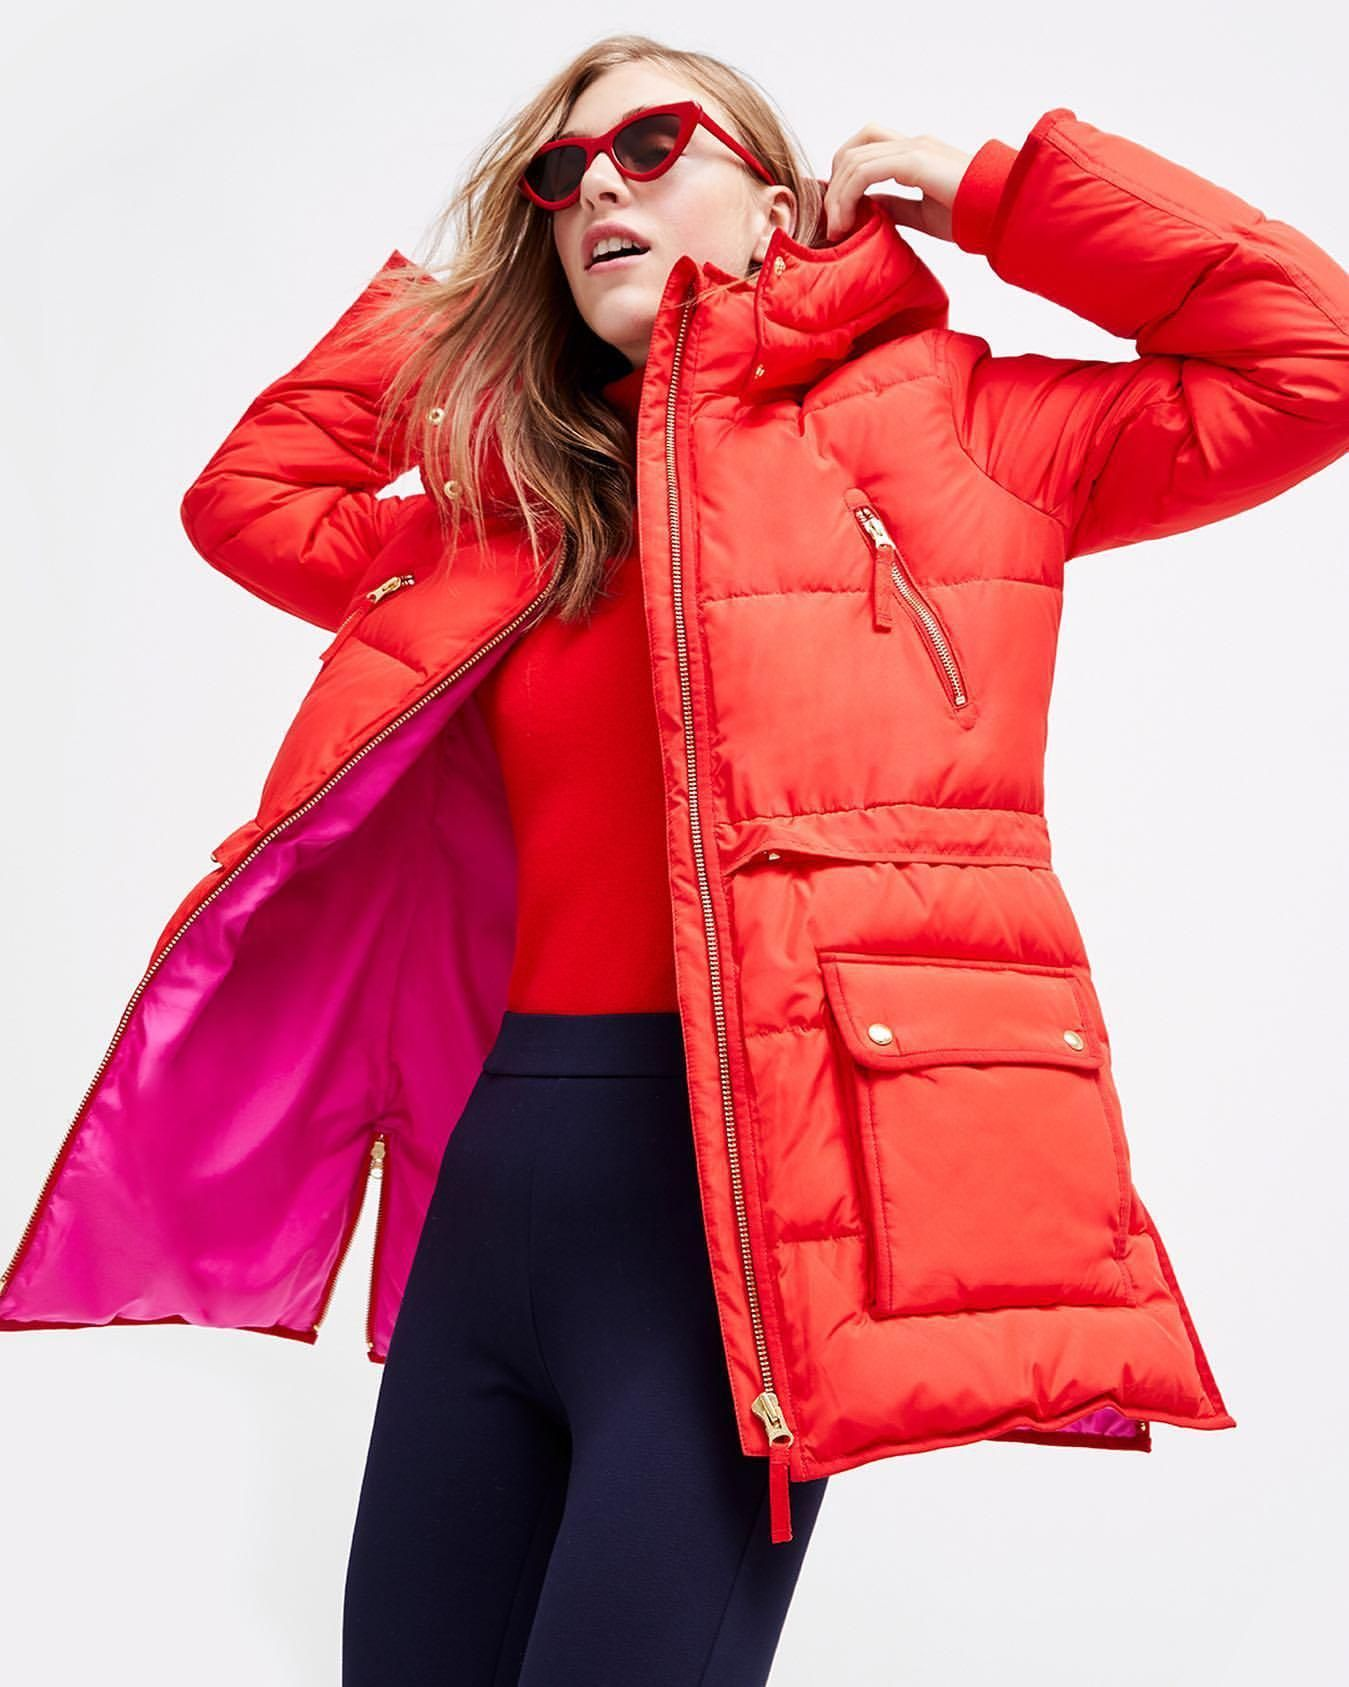 Pants 80 At Jcrew Com Wheretoget Winter Coat Outfits Red Puffer Coat Outerwear Trends [ 1687 x 1349 Pixel ]